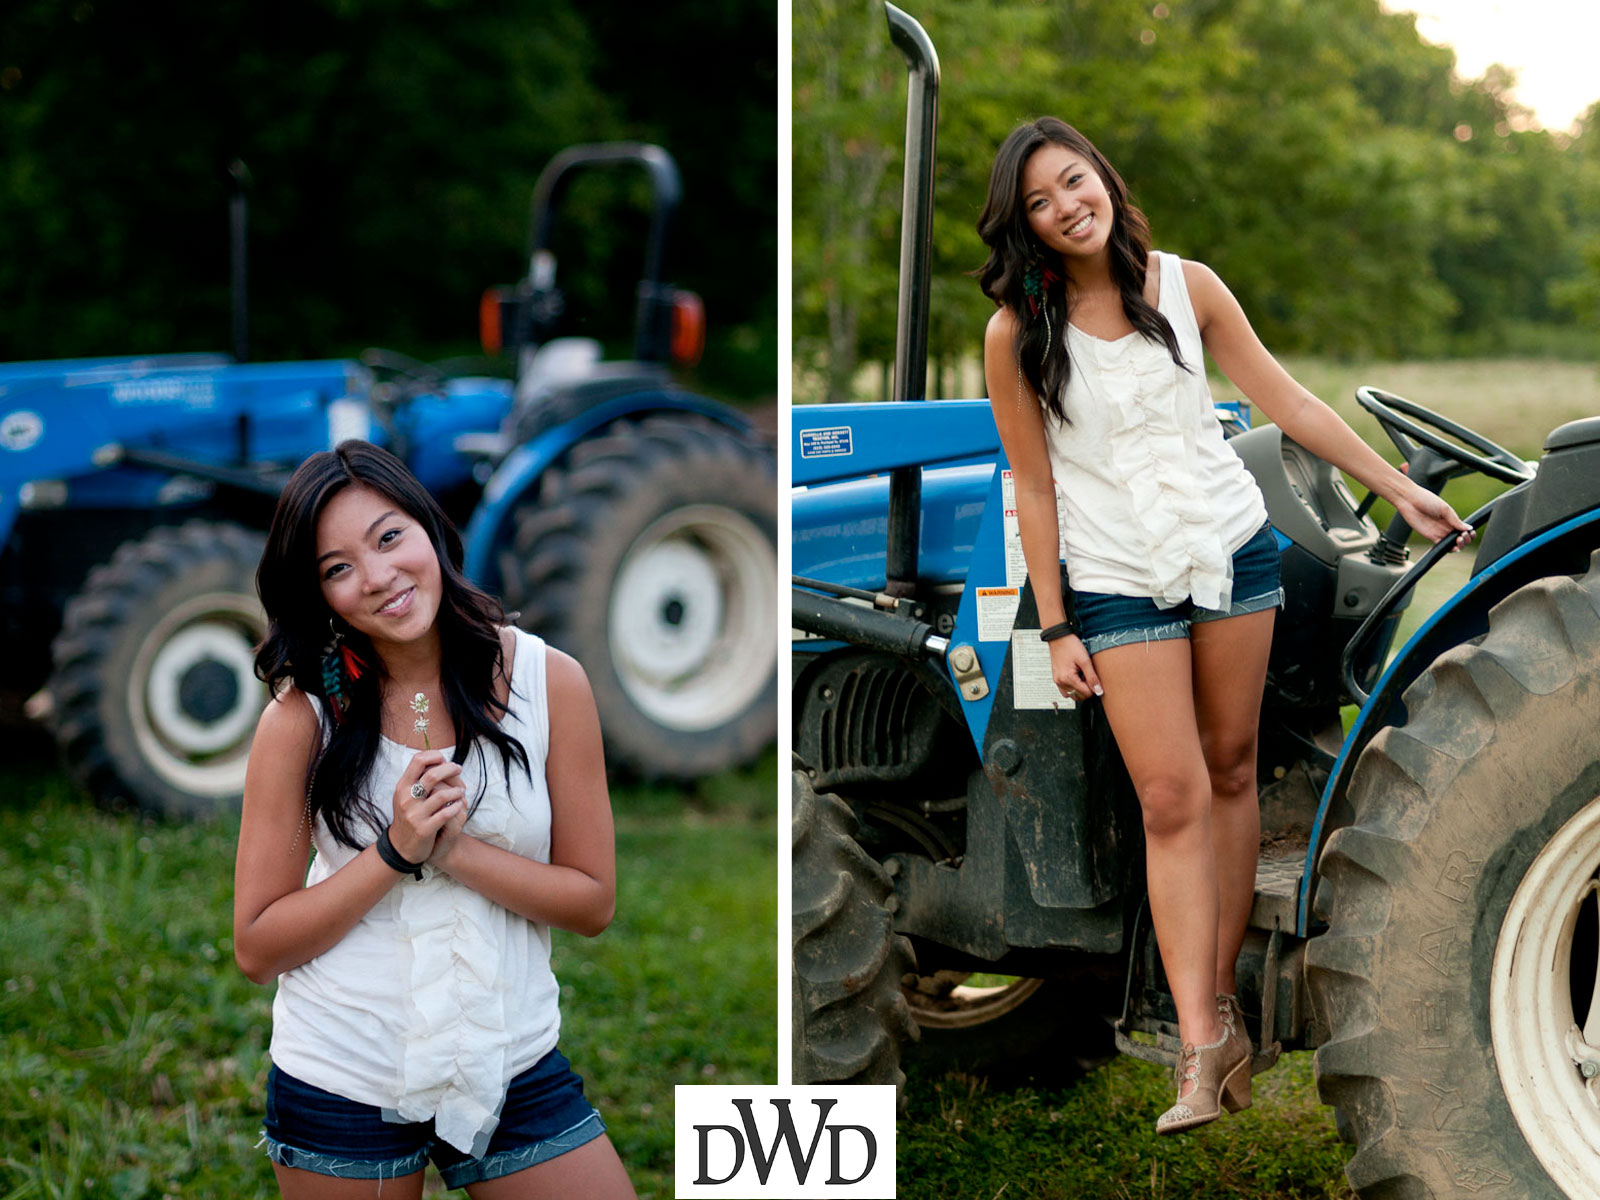 Senior Photo of Beautiful Asian Girl on Tractor | Senior Portraits Nashville TN